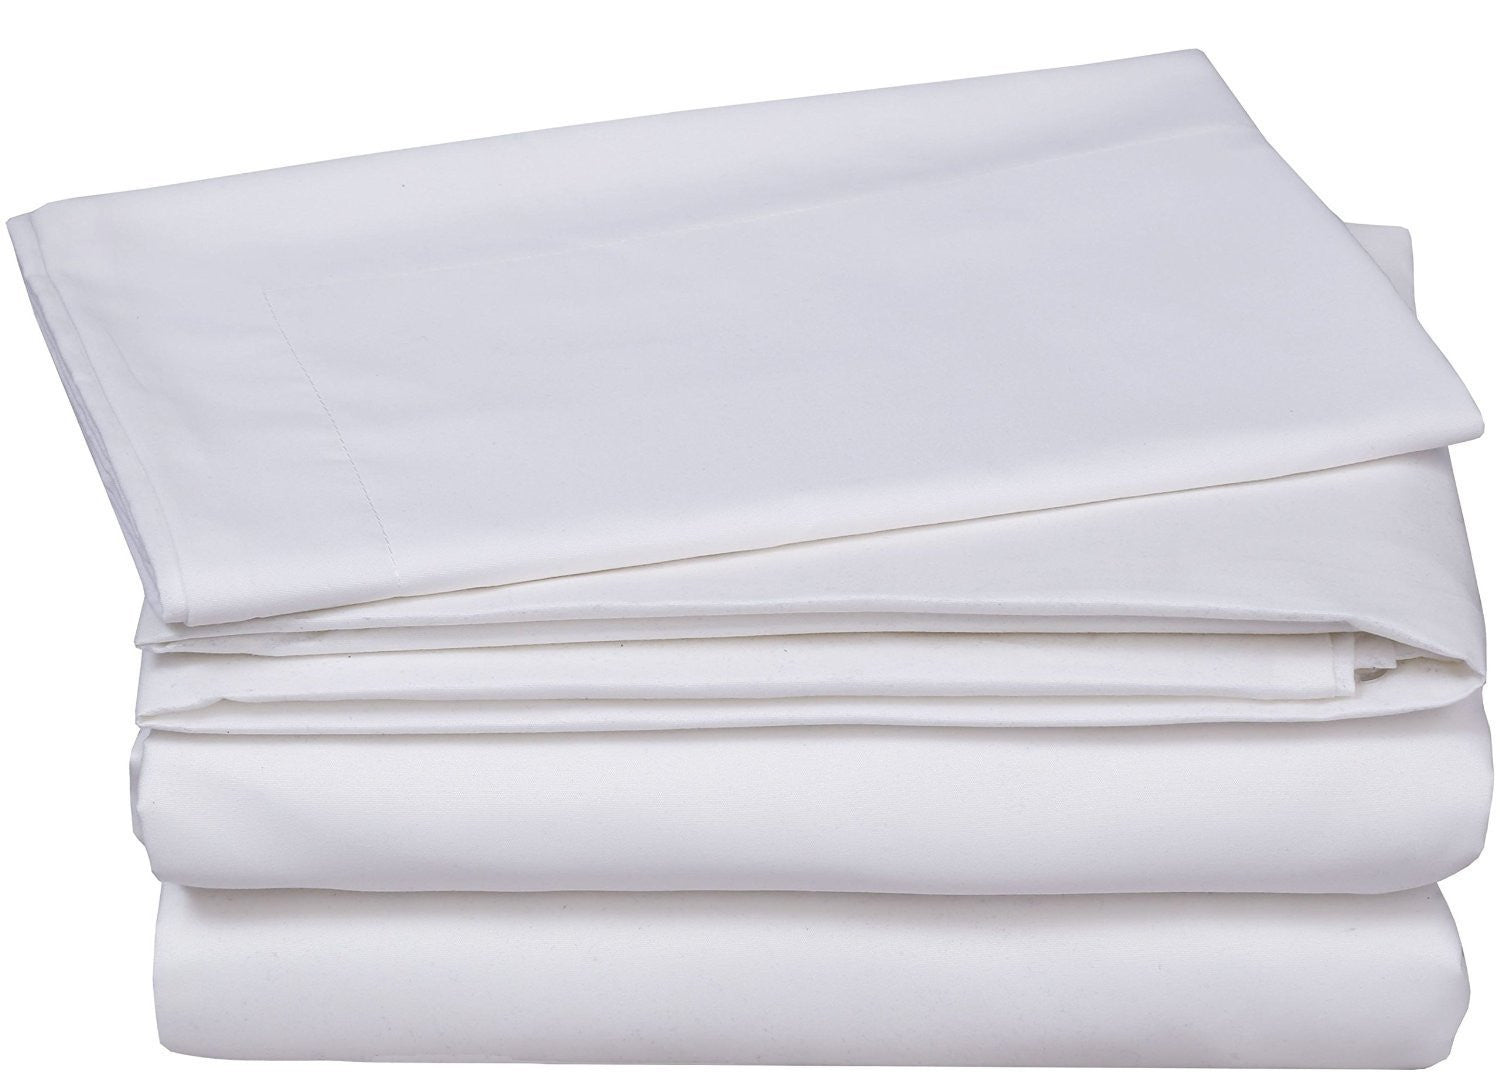 3 Piece Bed Sheet Set (White)